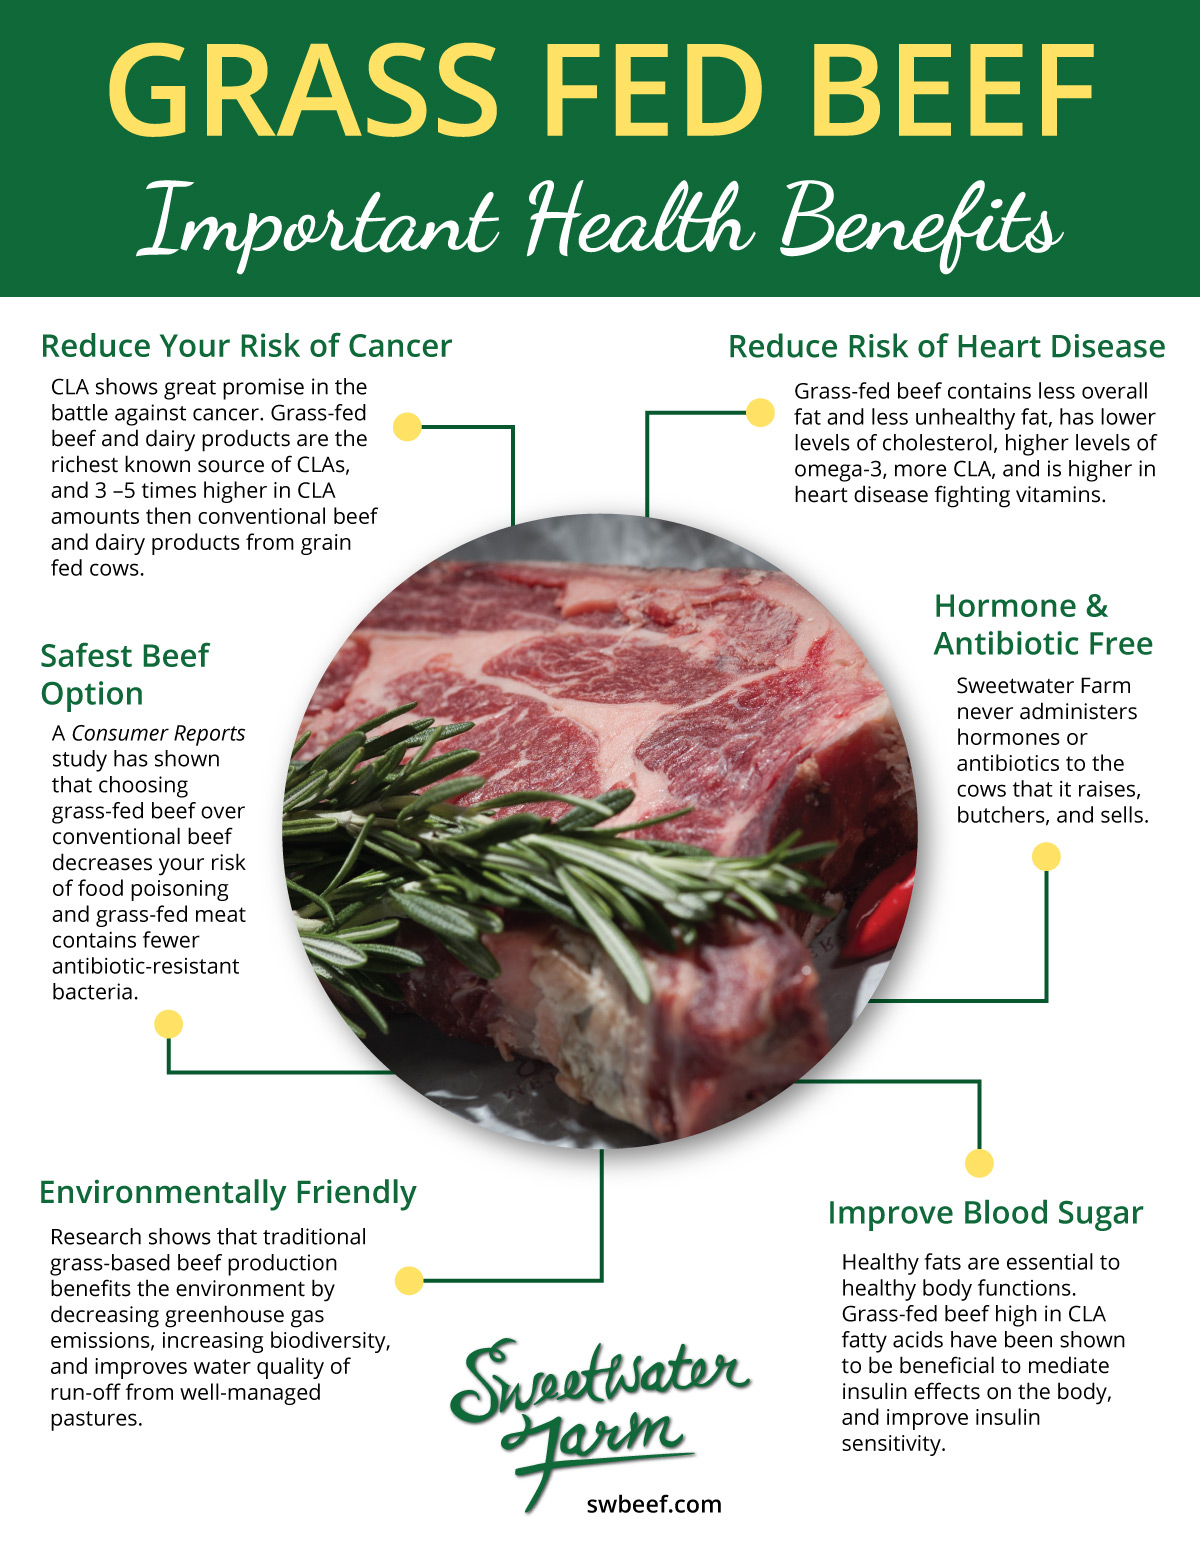 swbeef health benefits